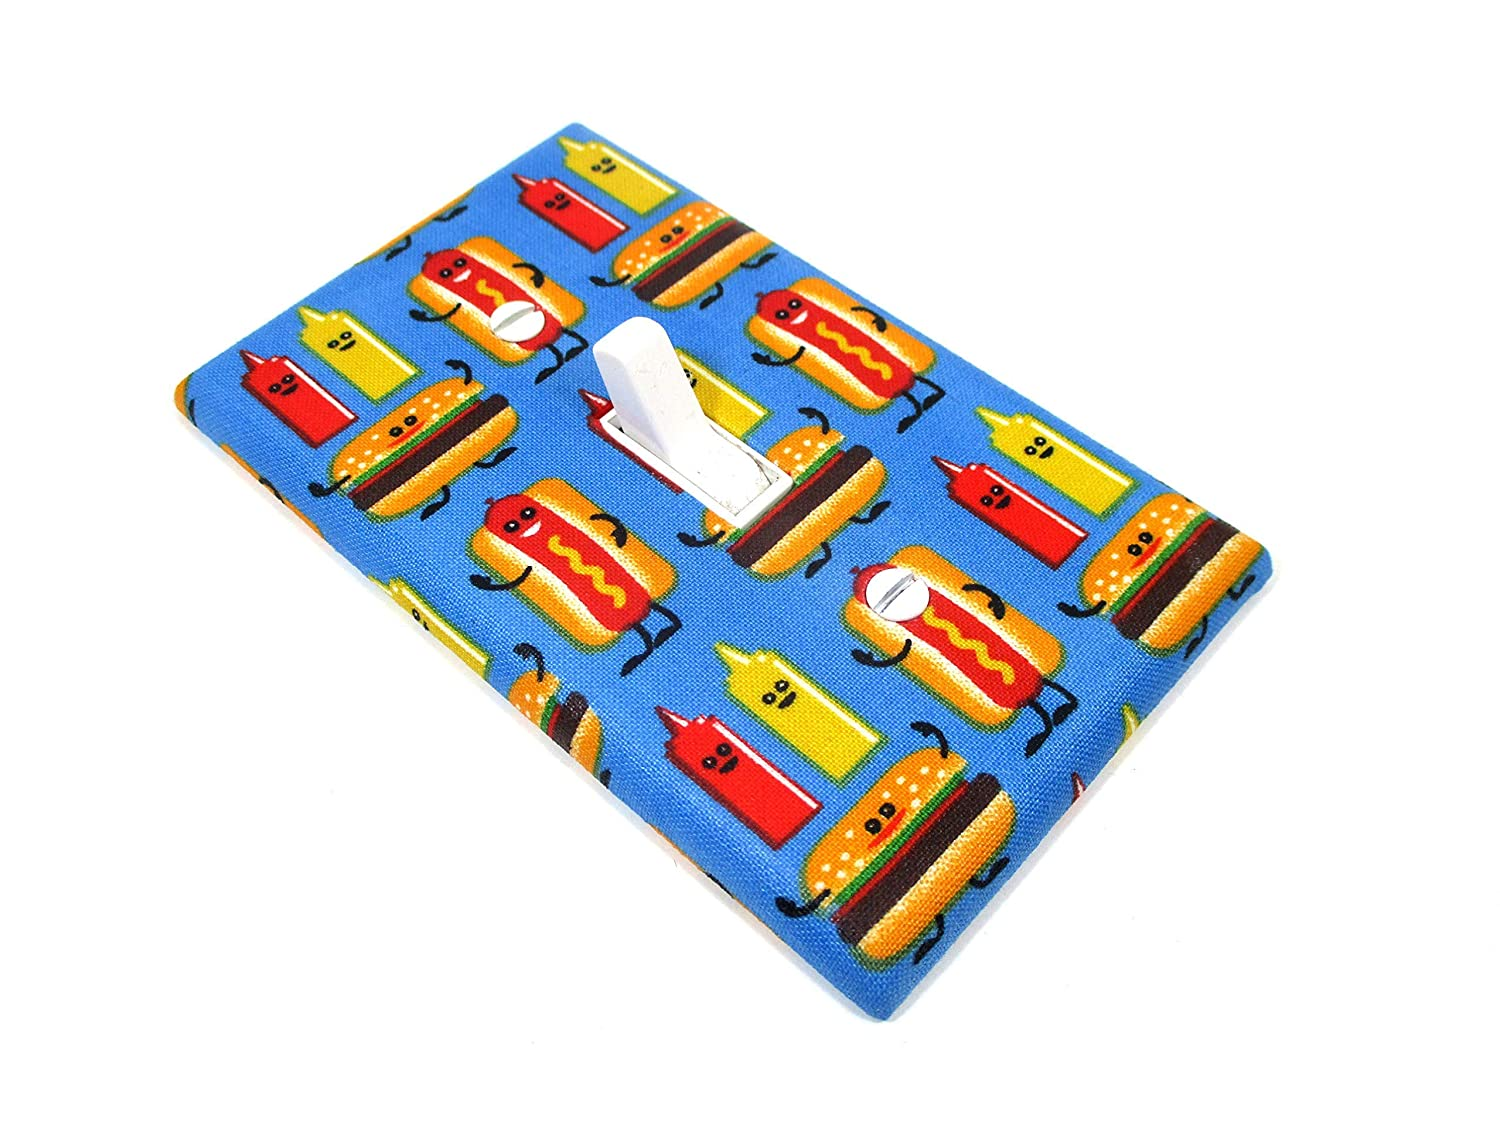 Deluxe Hot Dog Hamburger Manufacturer regenerated product Ketchup Mustard Light F Fast Plate Swich Cover